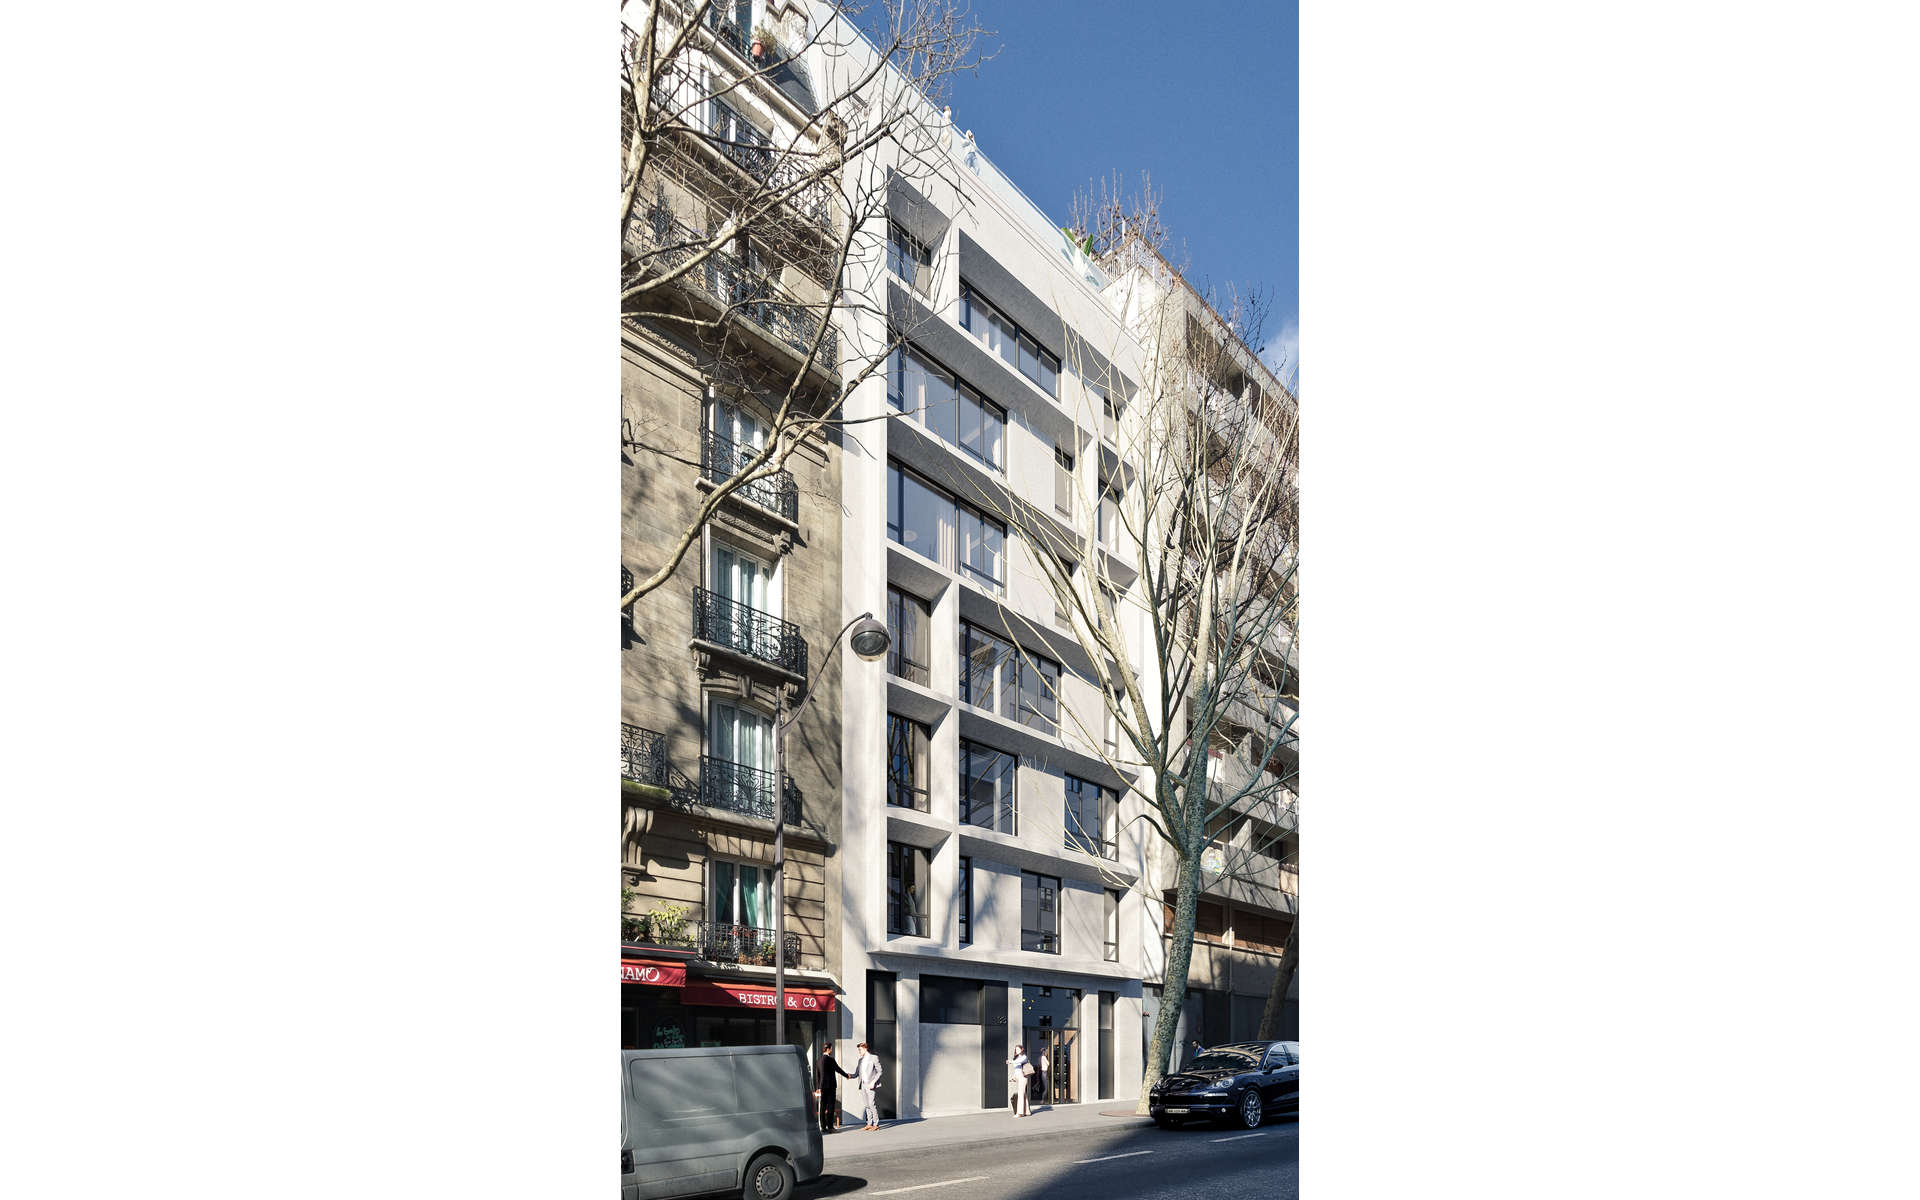 303/Alios/Photos/Projets/Paris Mathurin Moreau/alios_paris_mathurin_logement_facade.jpg